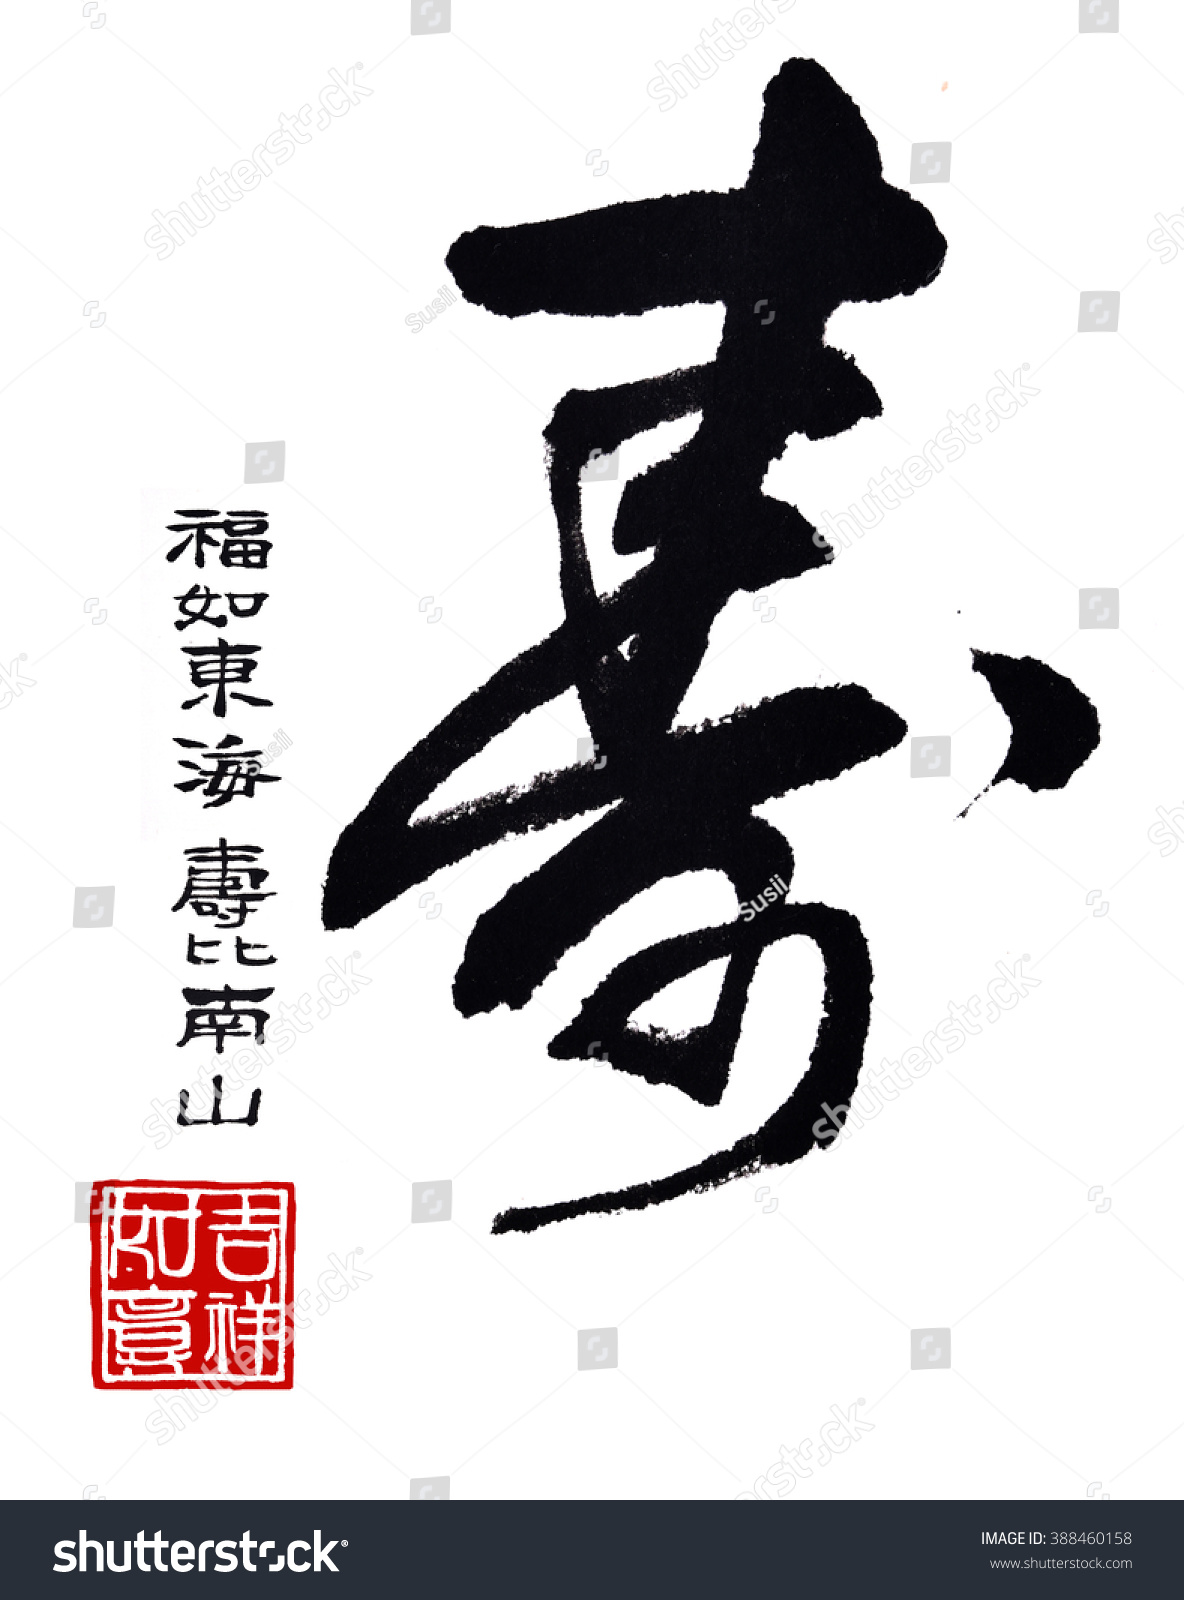 Brush write chinese characters red seal stock illustration brush to write chinese characters and red seal meaning longevity buycottarizona